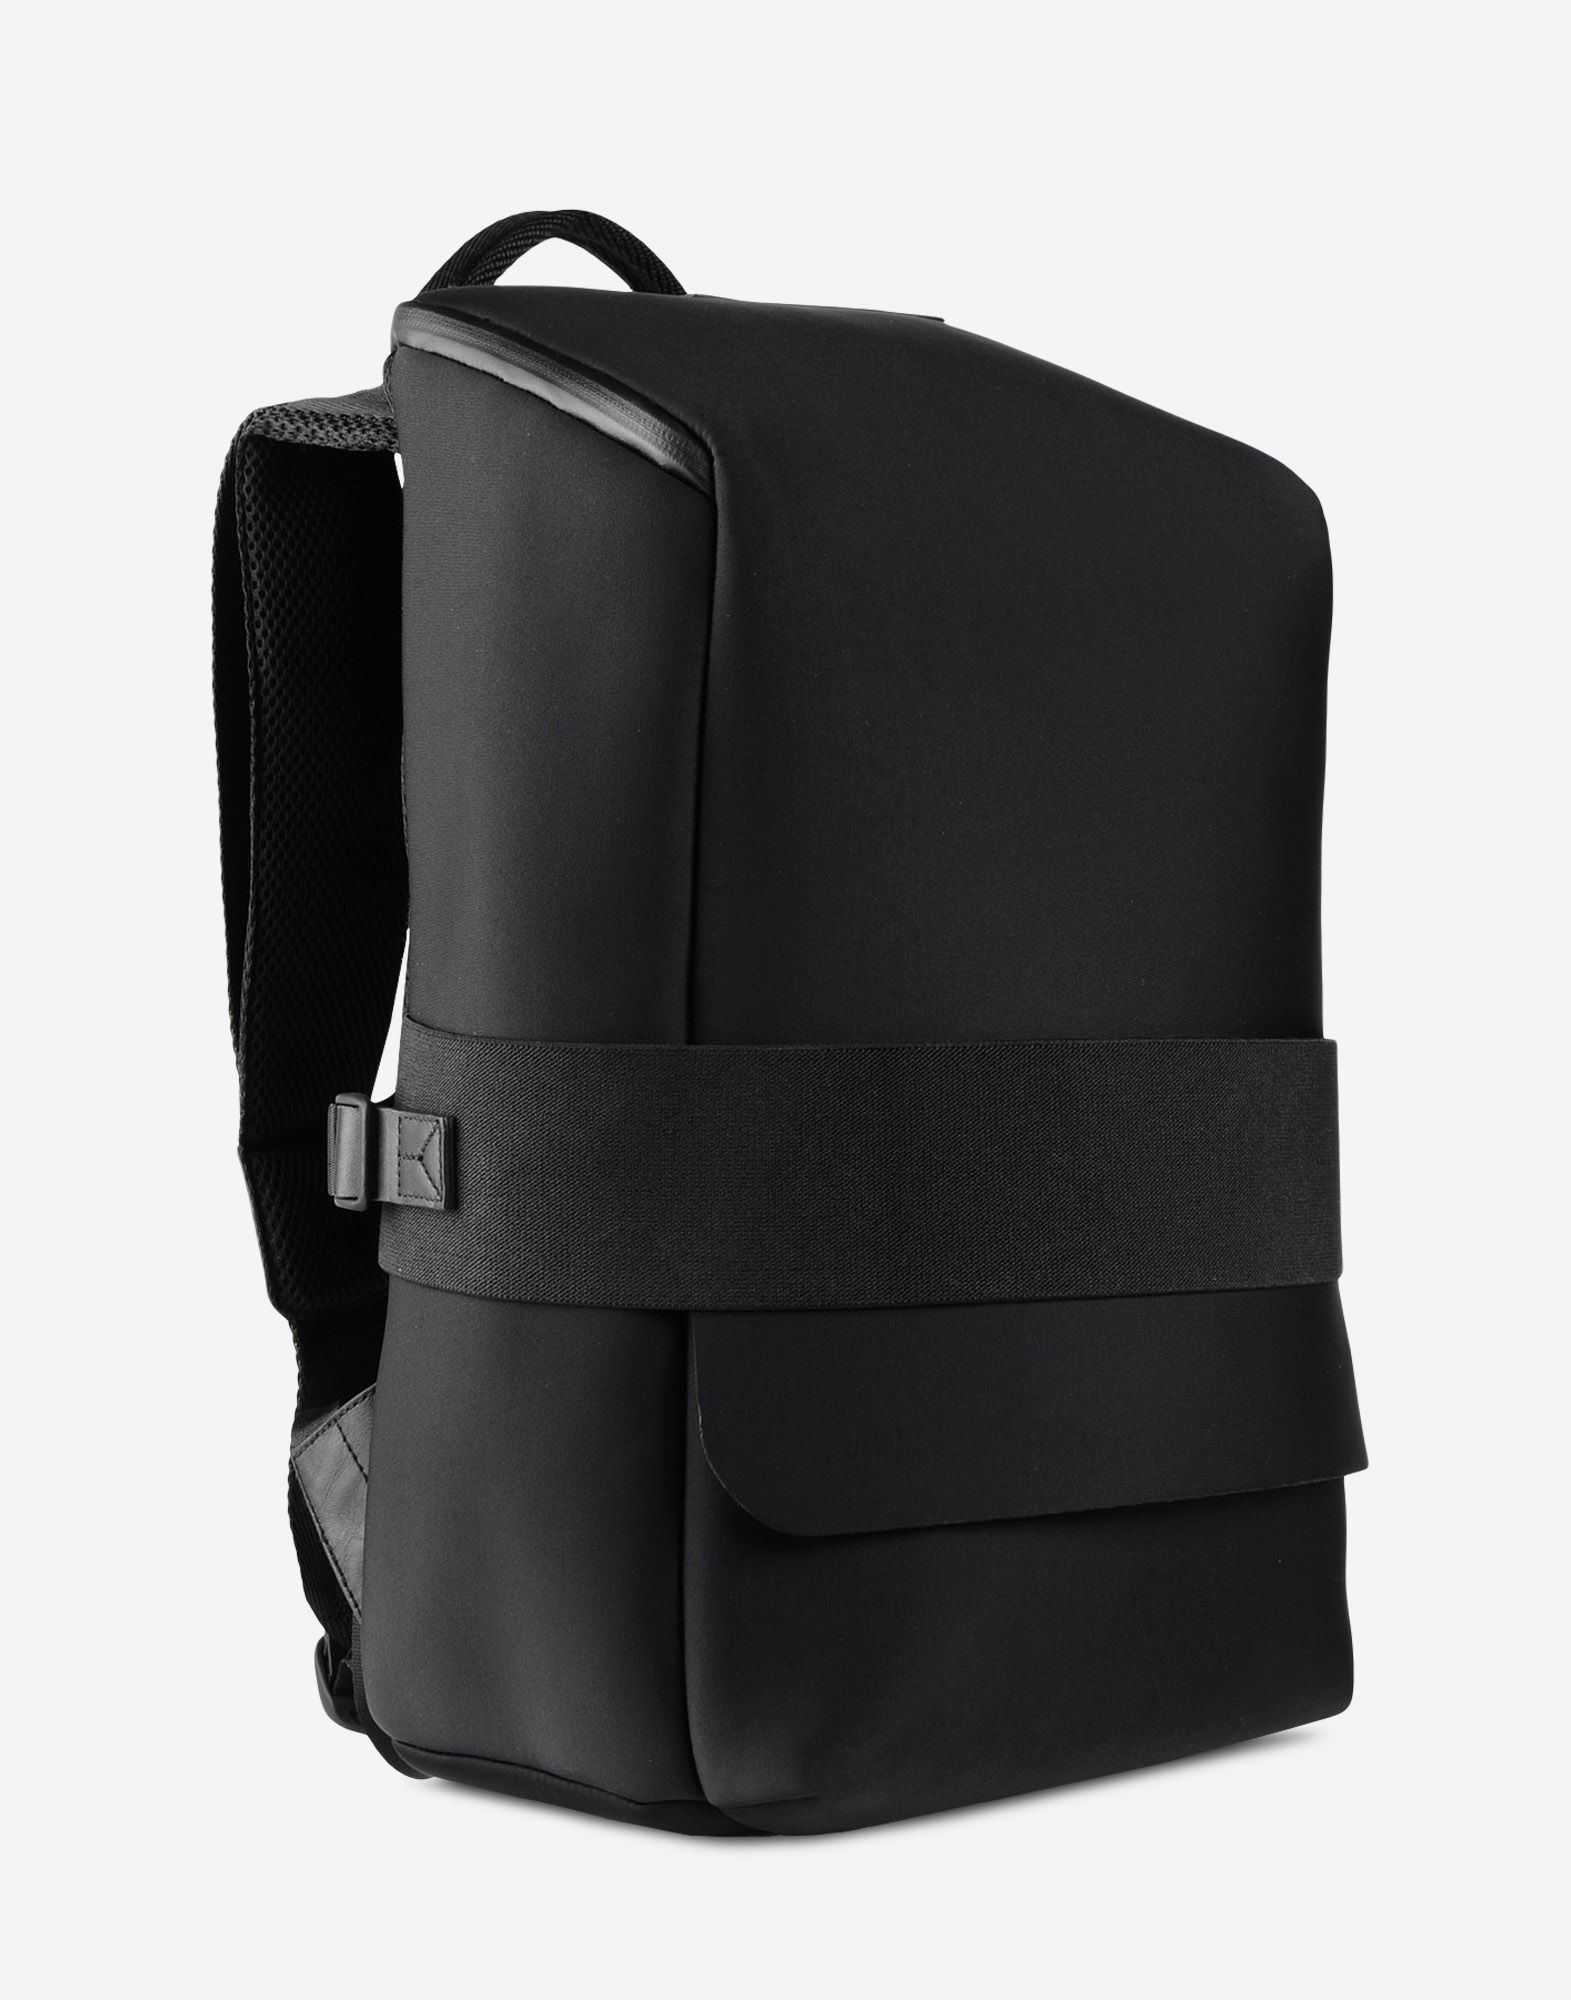 84baaa992715 ... Y-3 Y-3 DAY SMALL BACKPACK Backpack E ...